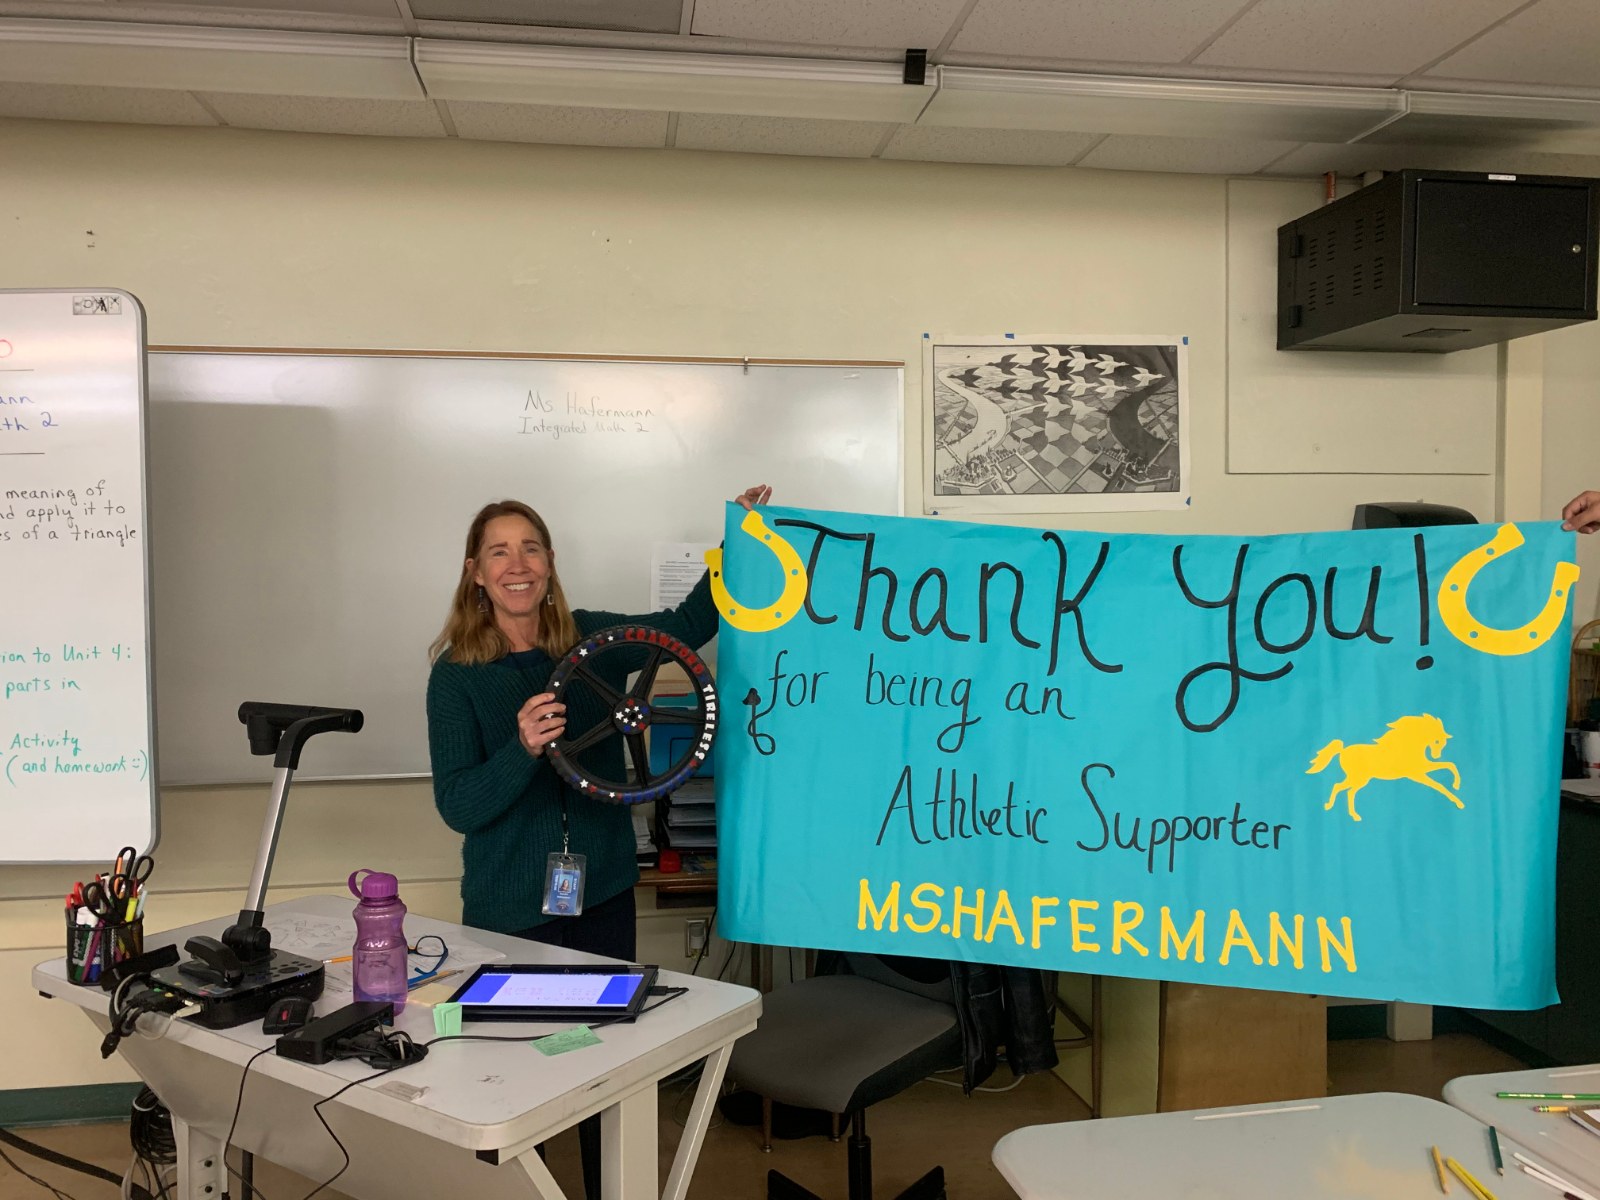 Crawford Teacher Ms. Hafermann wins Tireless Teacher Award